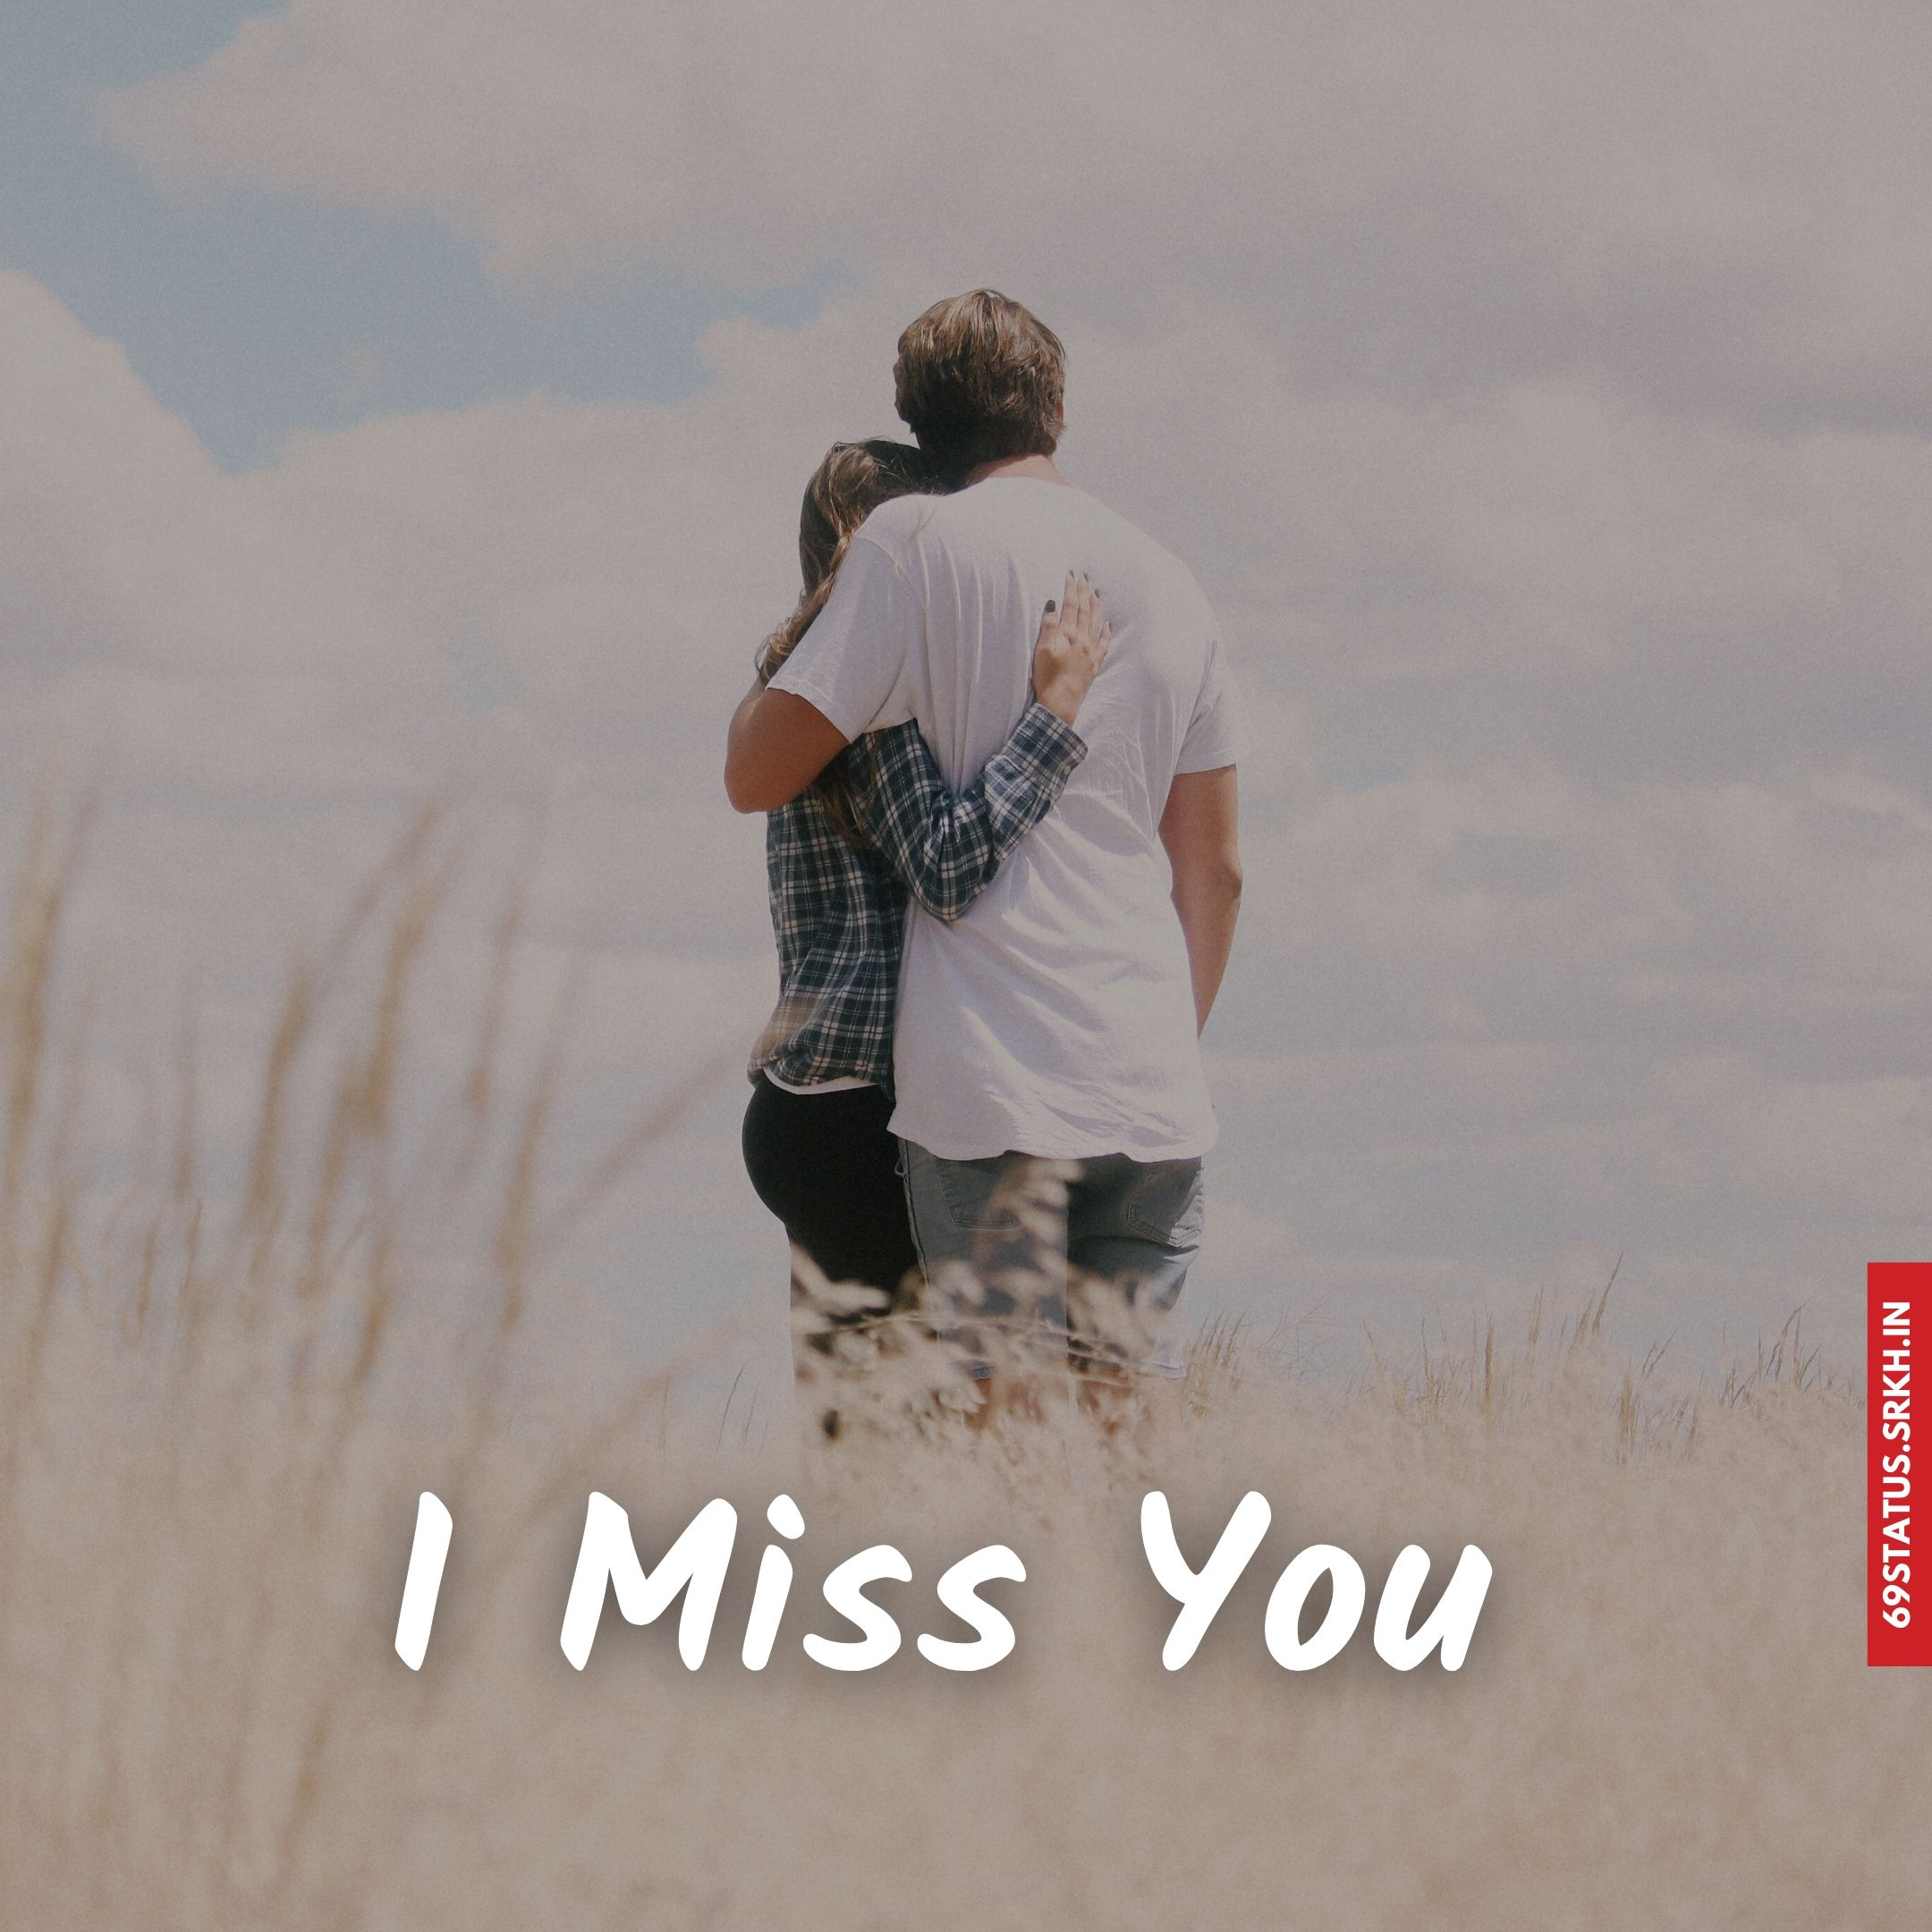 I miss you love images hd full HD free download.